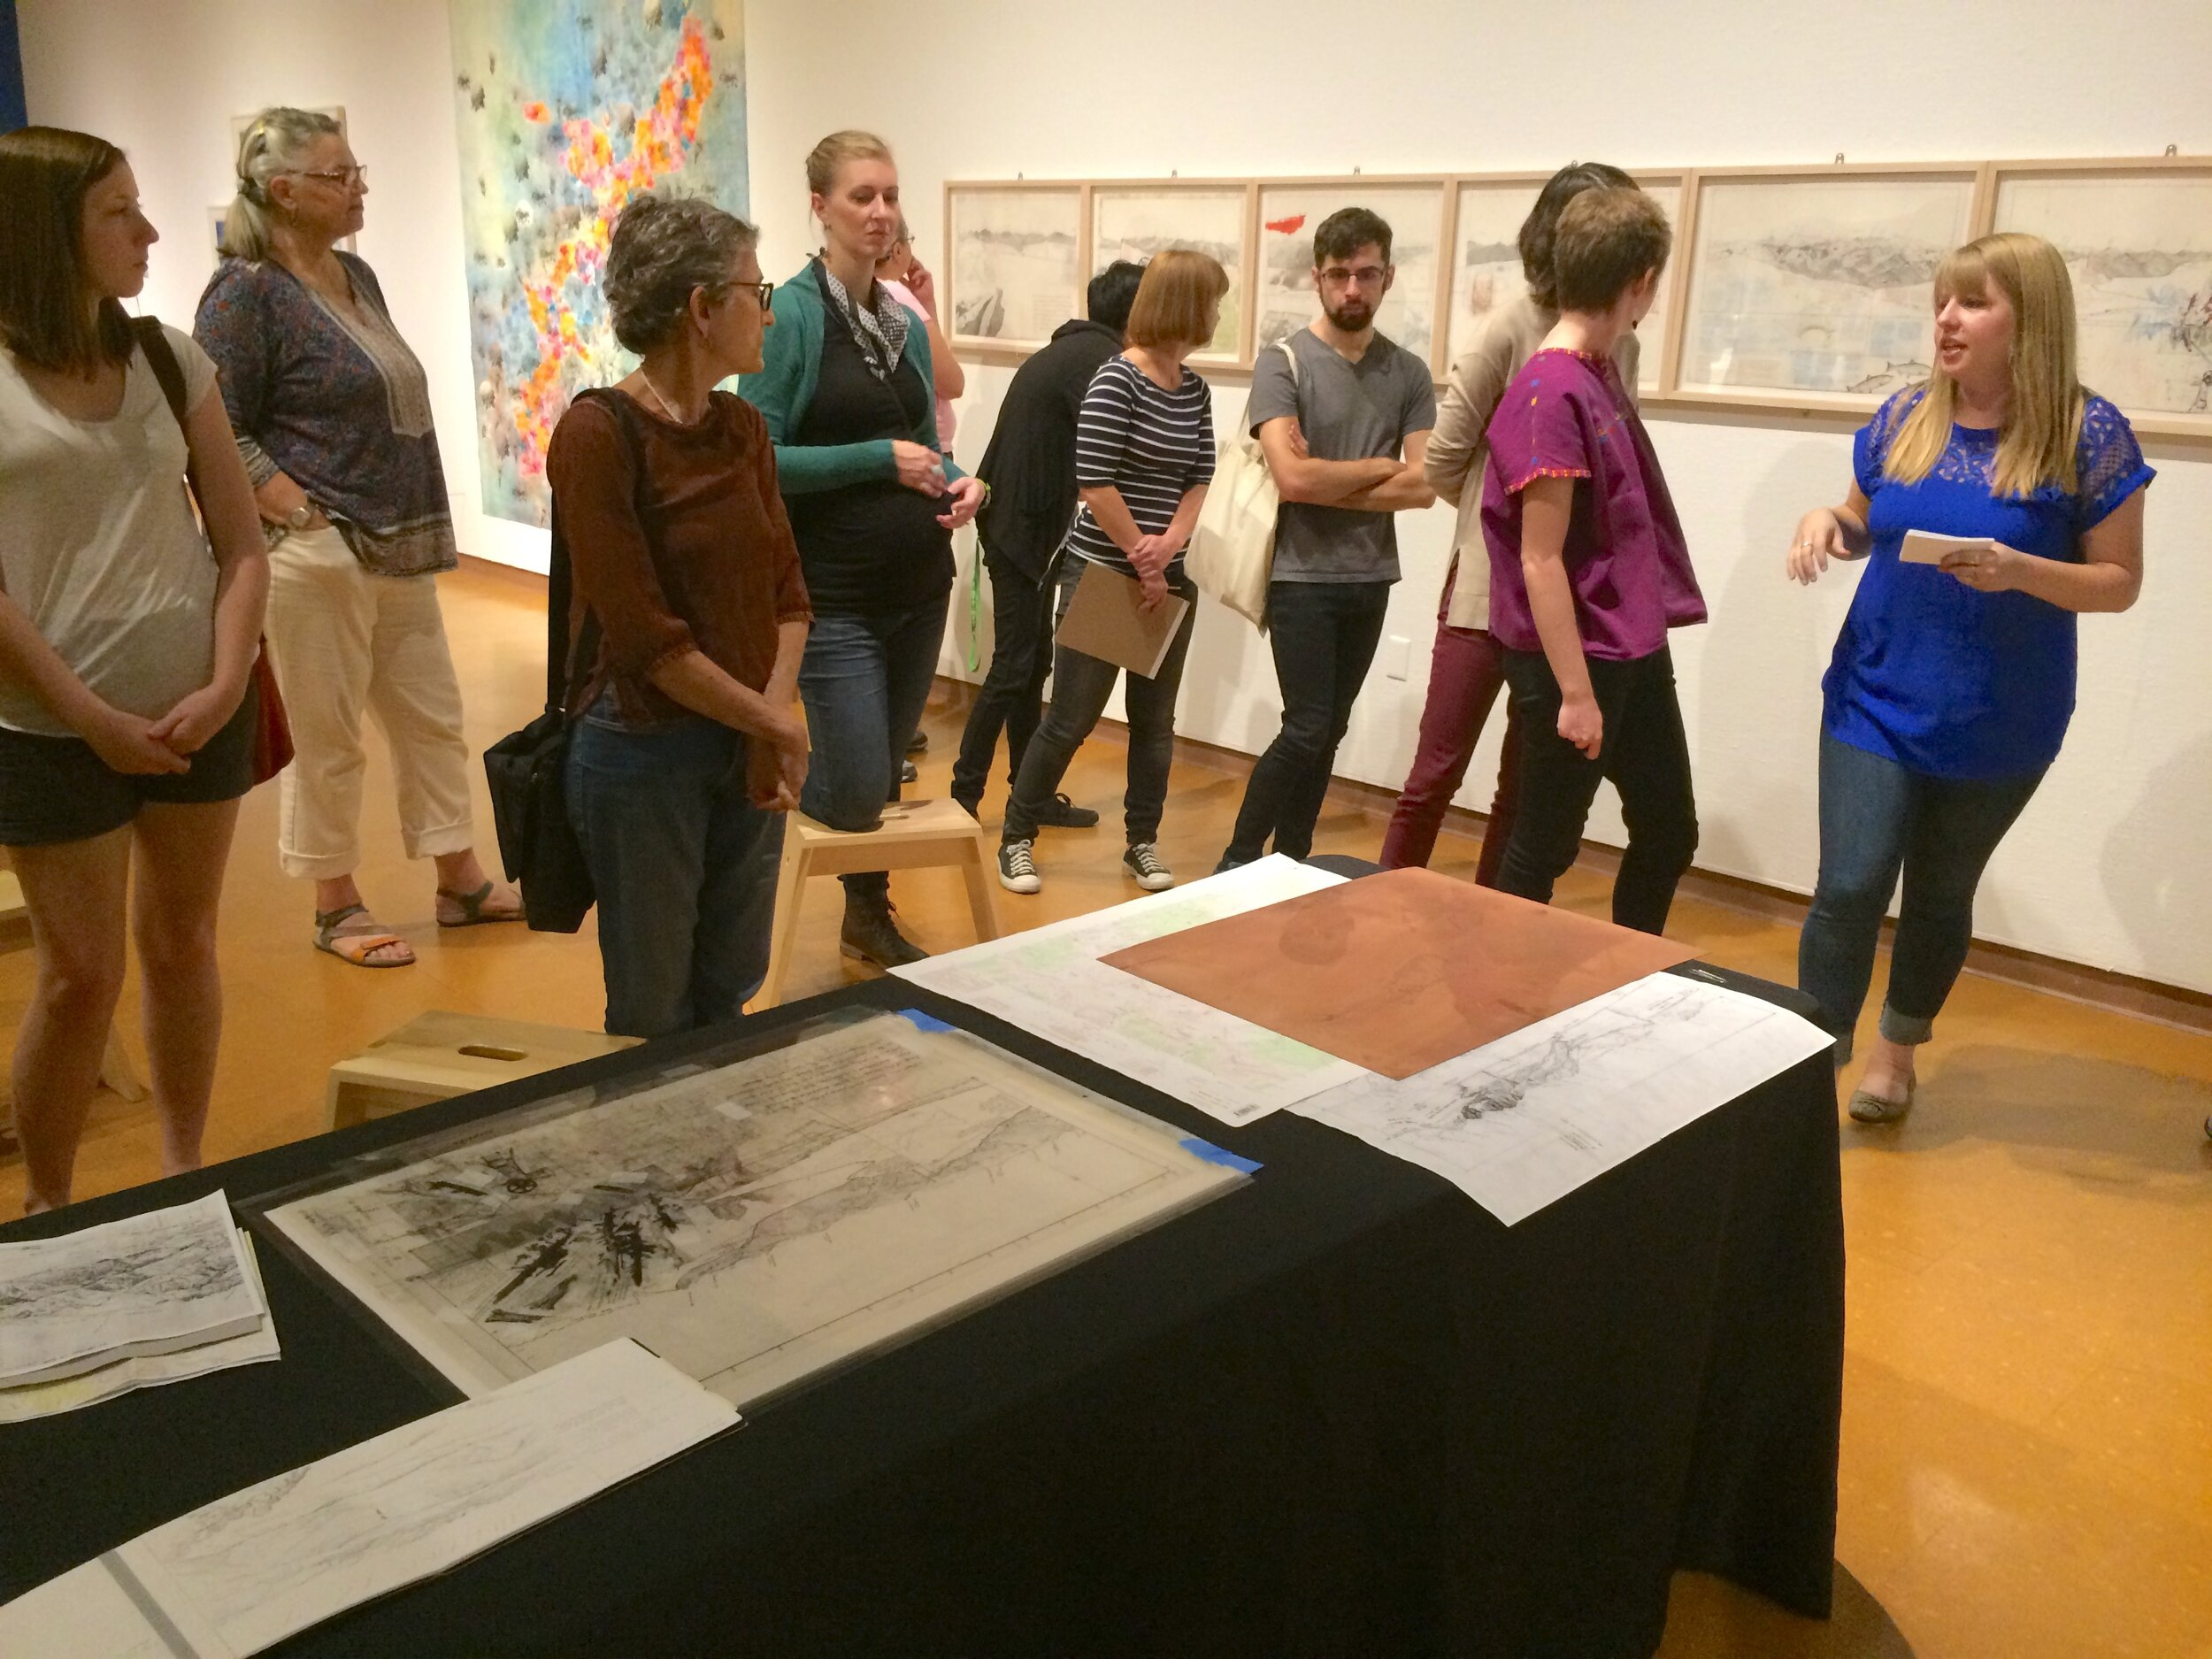 Artist Katelyn Bladel leading a printmaking demo and conversation.